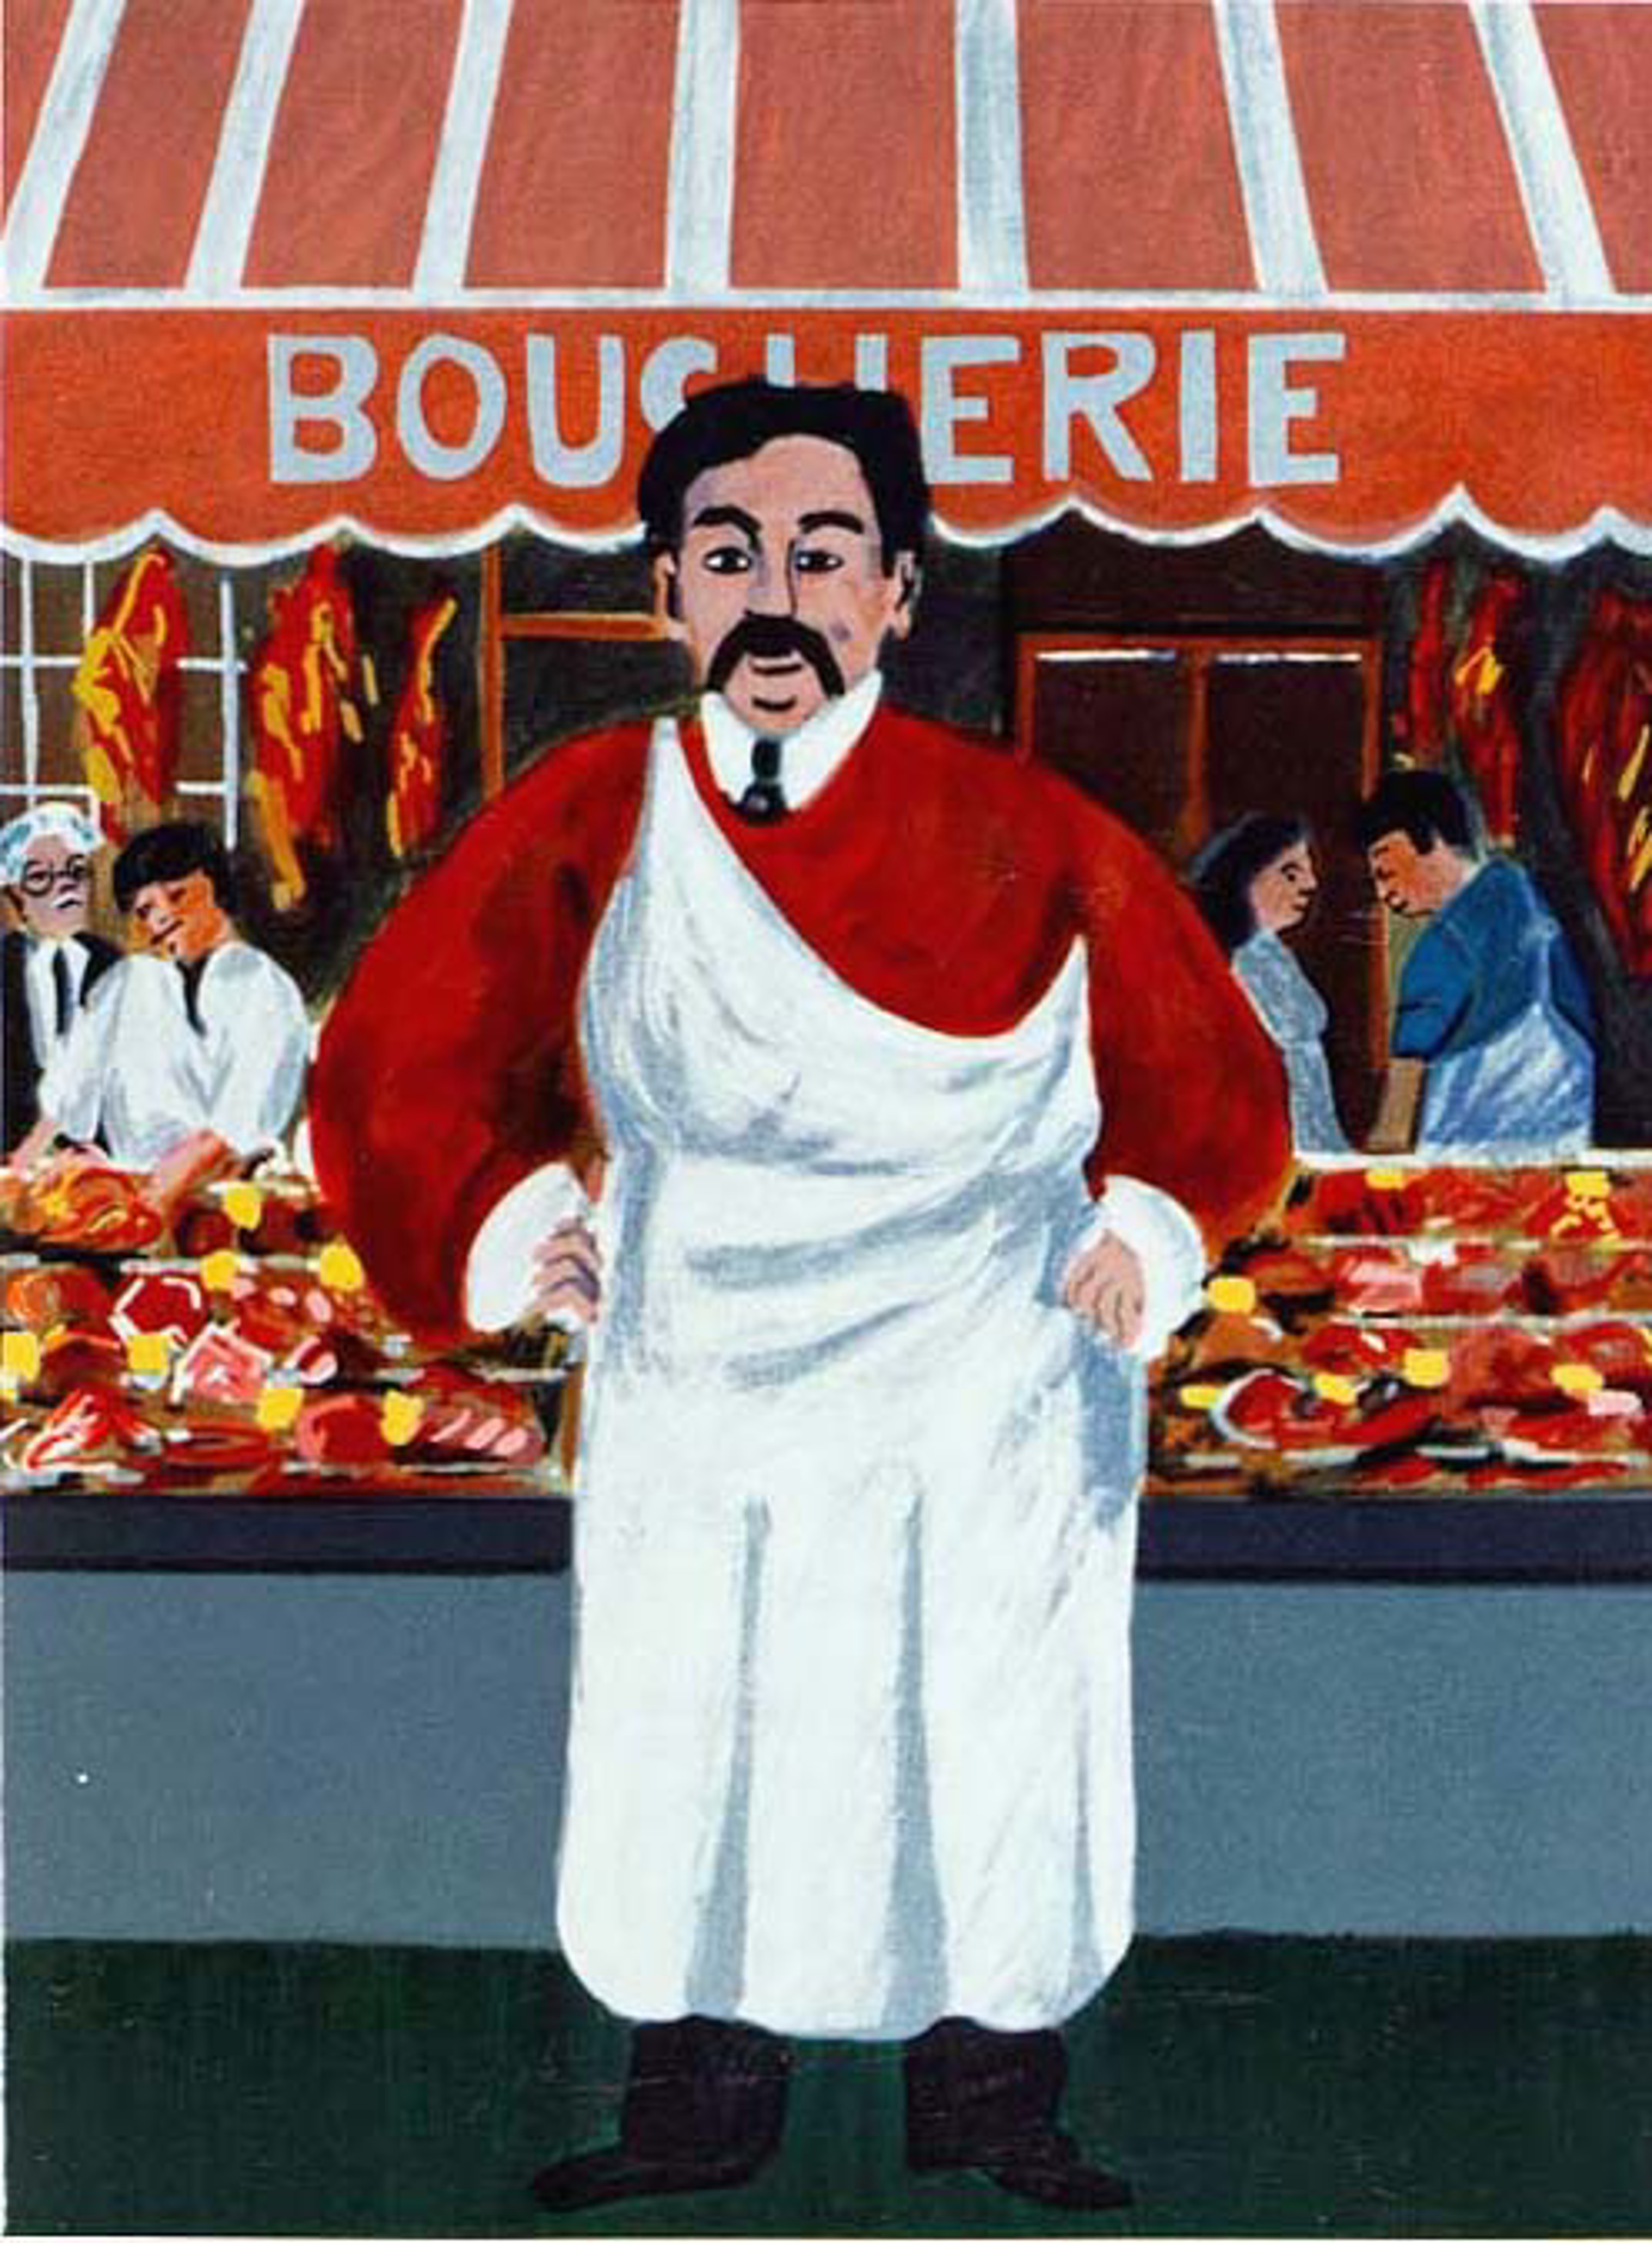 The Butcher by Guy Buffet